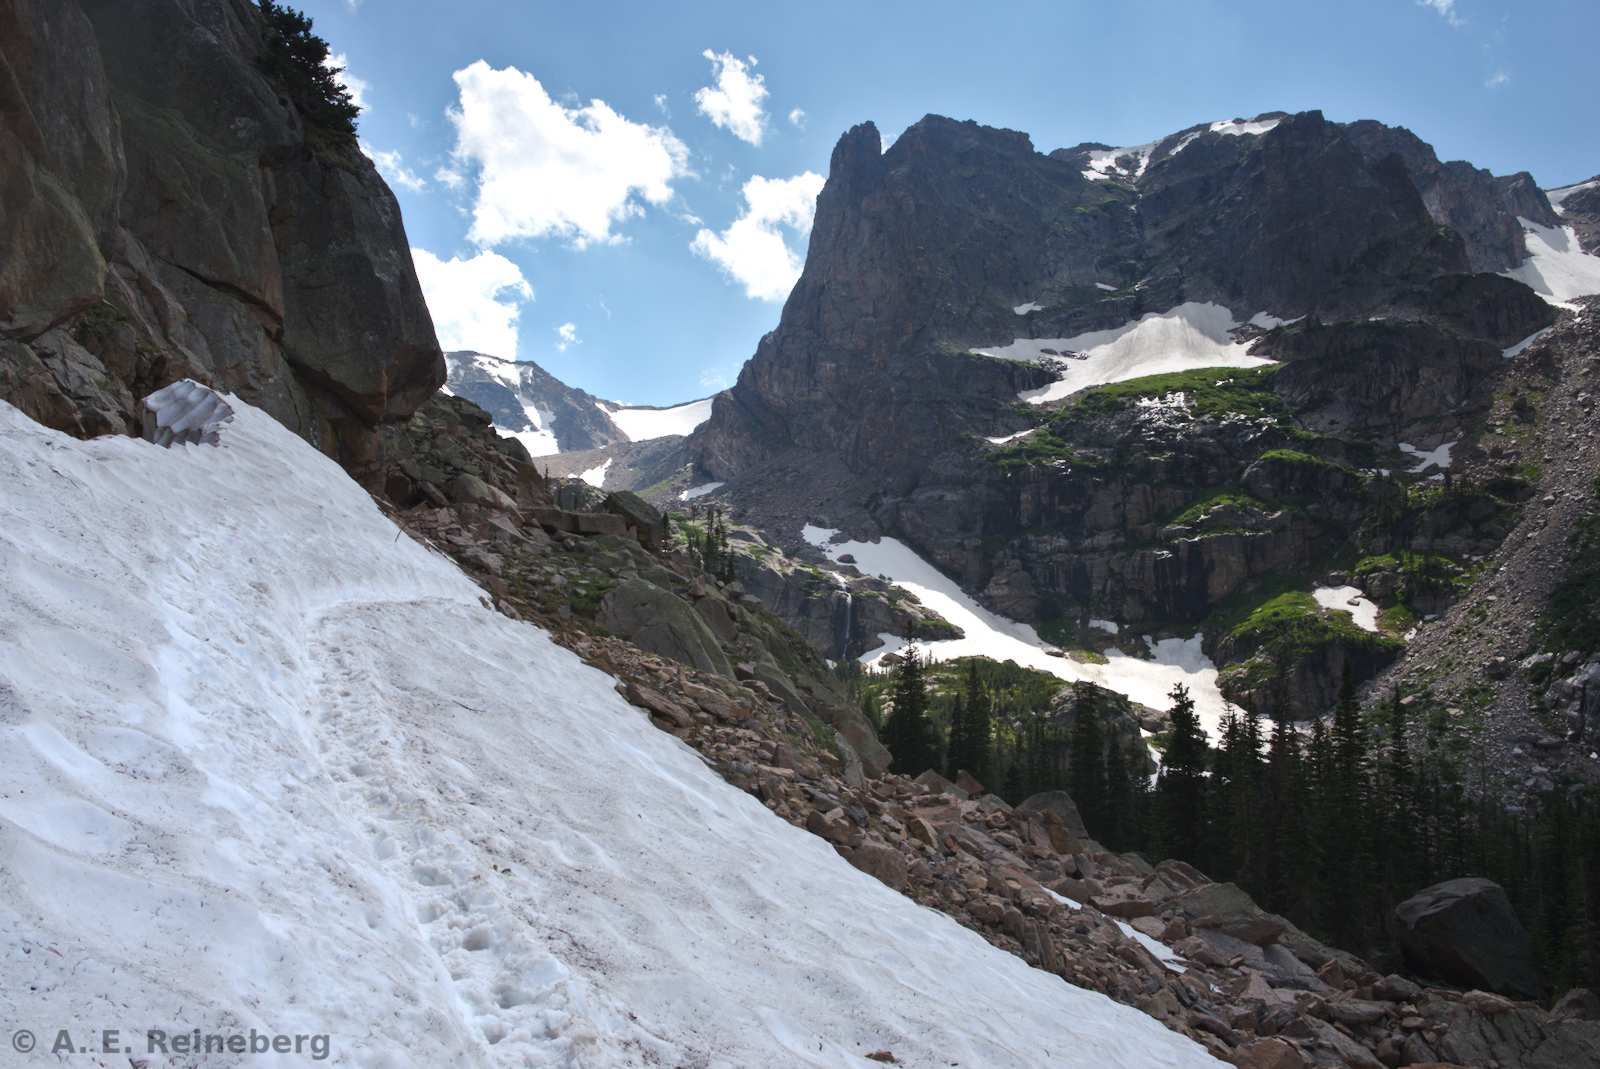 Summer hiking in Rocky Mountain National Park